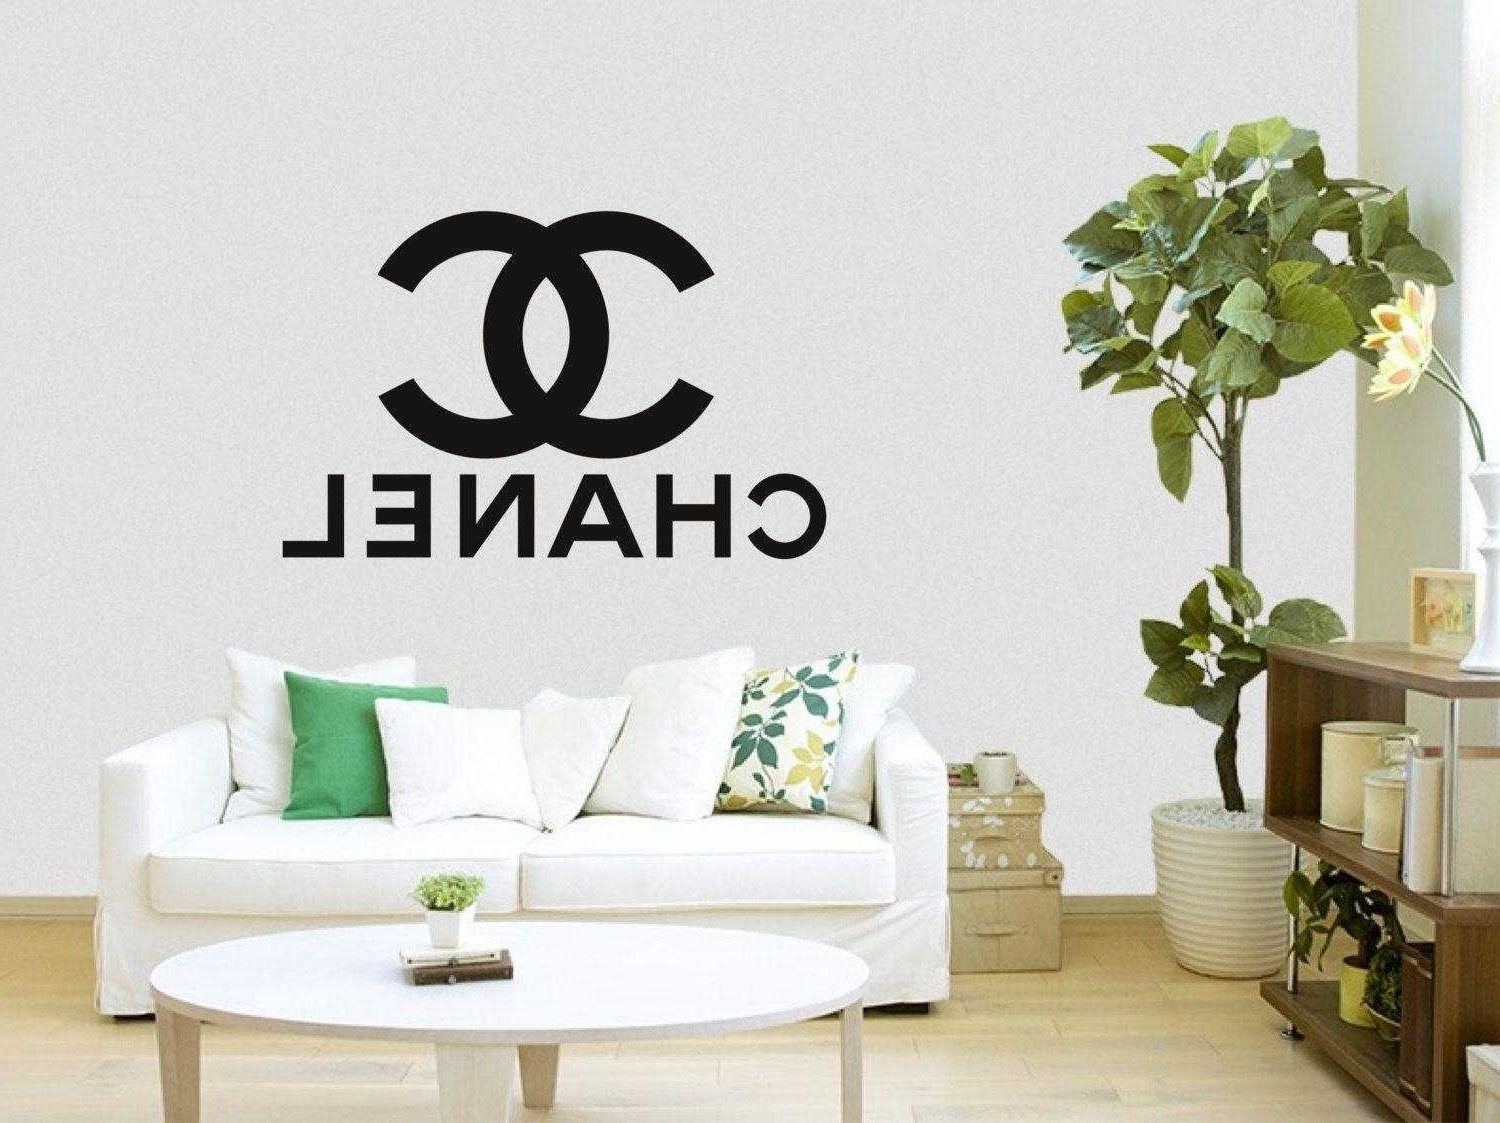 Coco Chanel Wall Stickers (View 11 of 15)